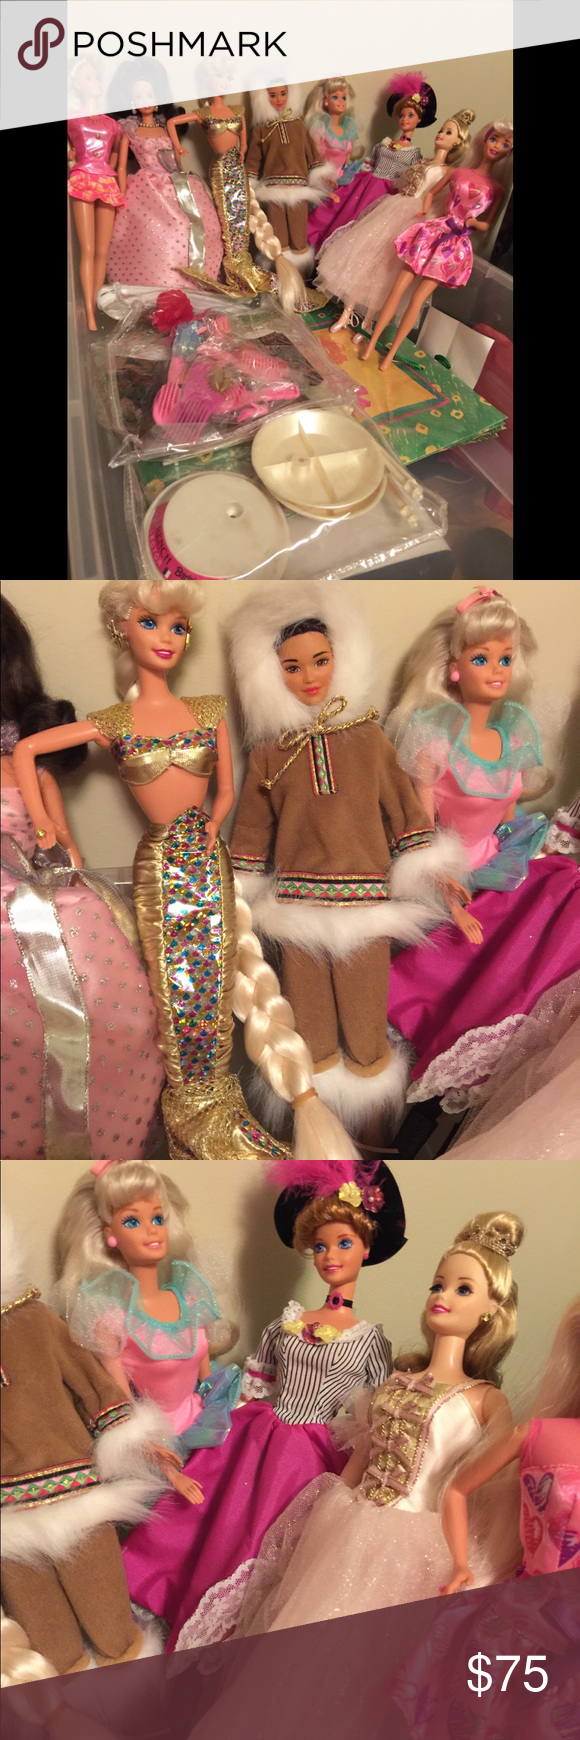 BARBIE DOLL COLLECTION 15 yr old Barbies save from a house